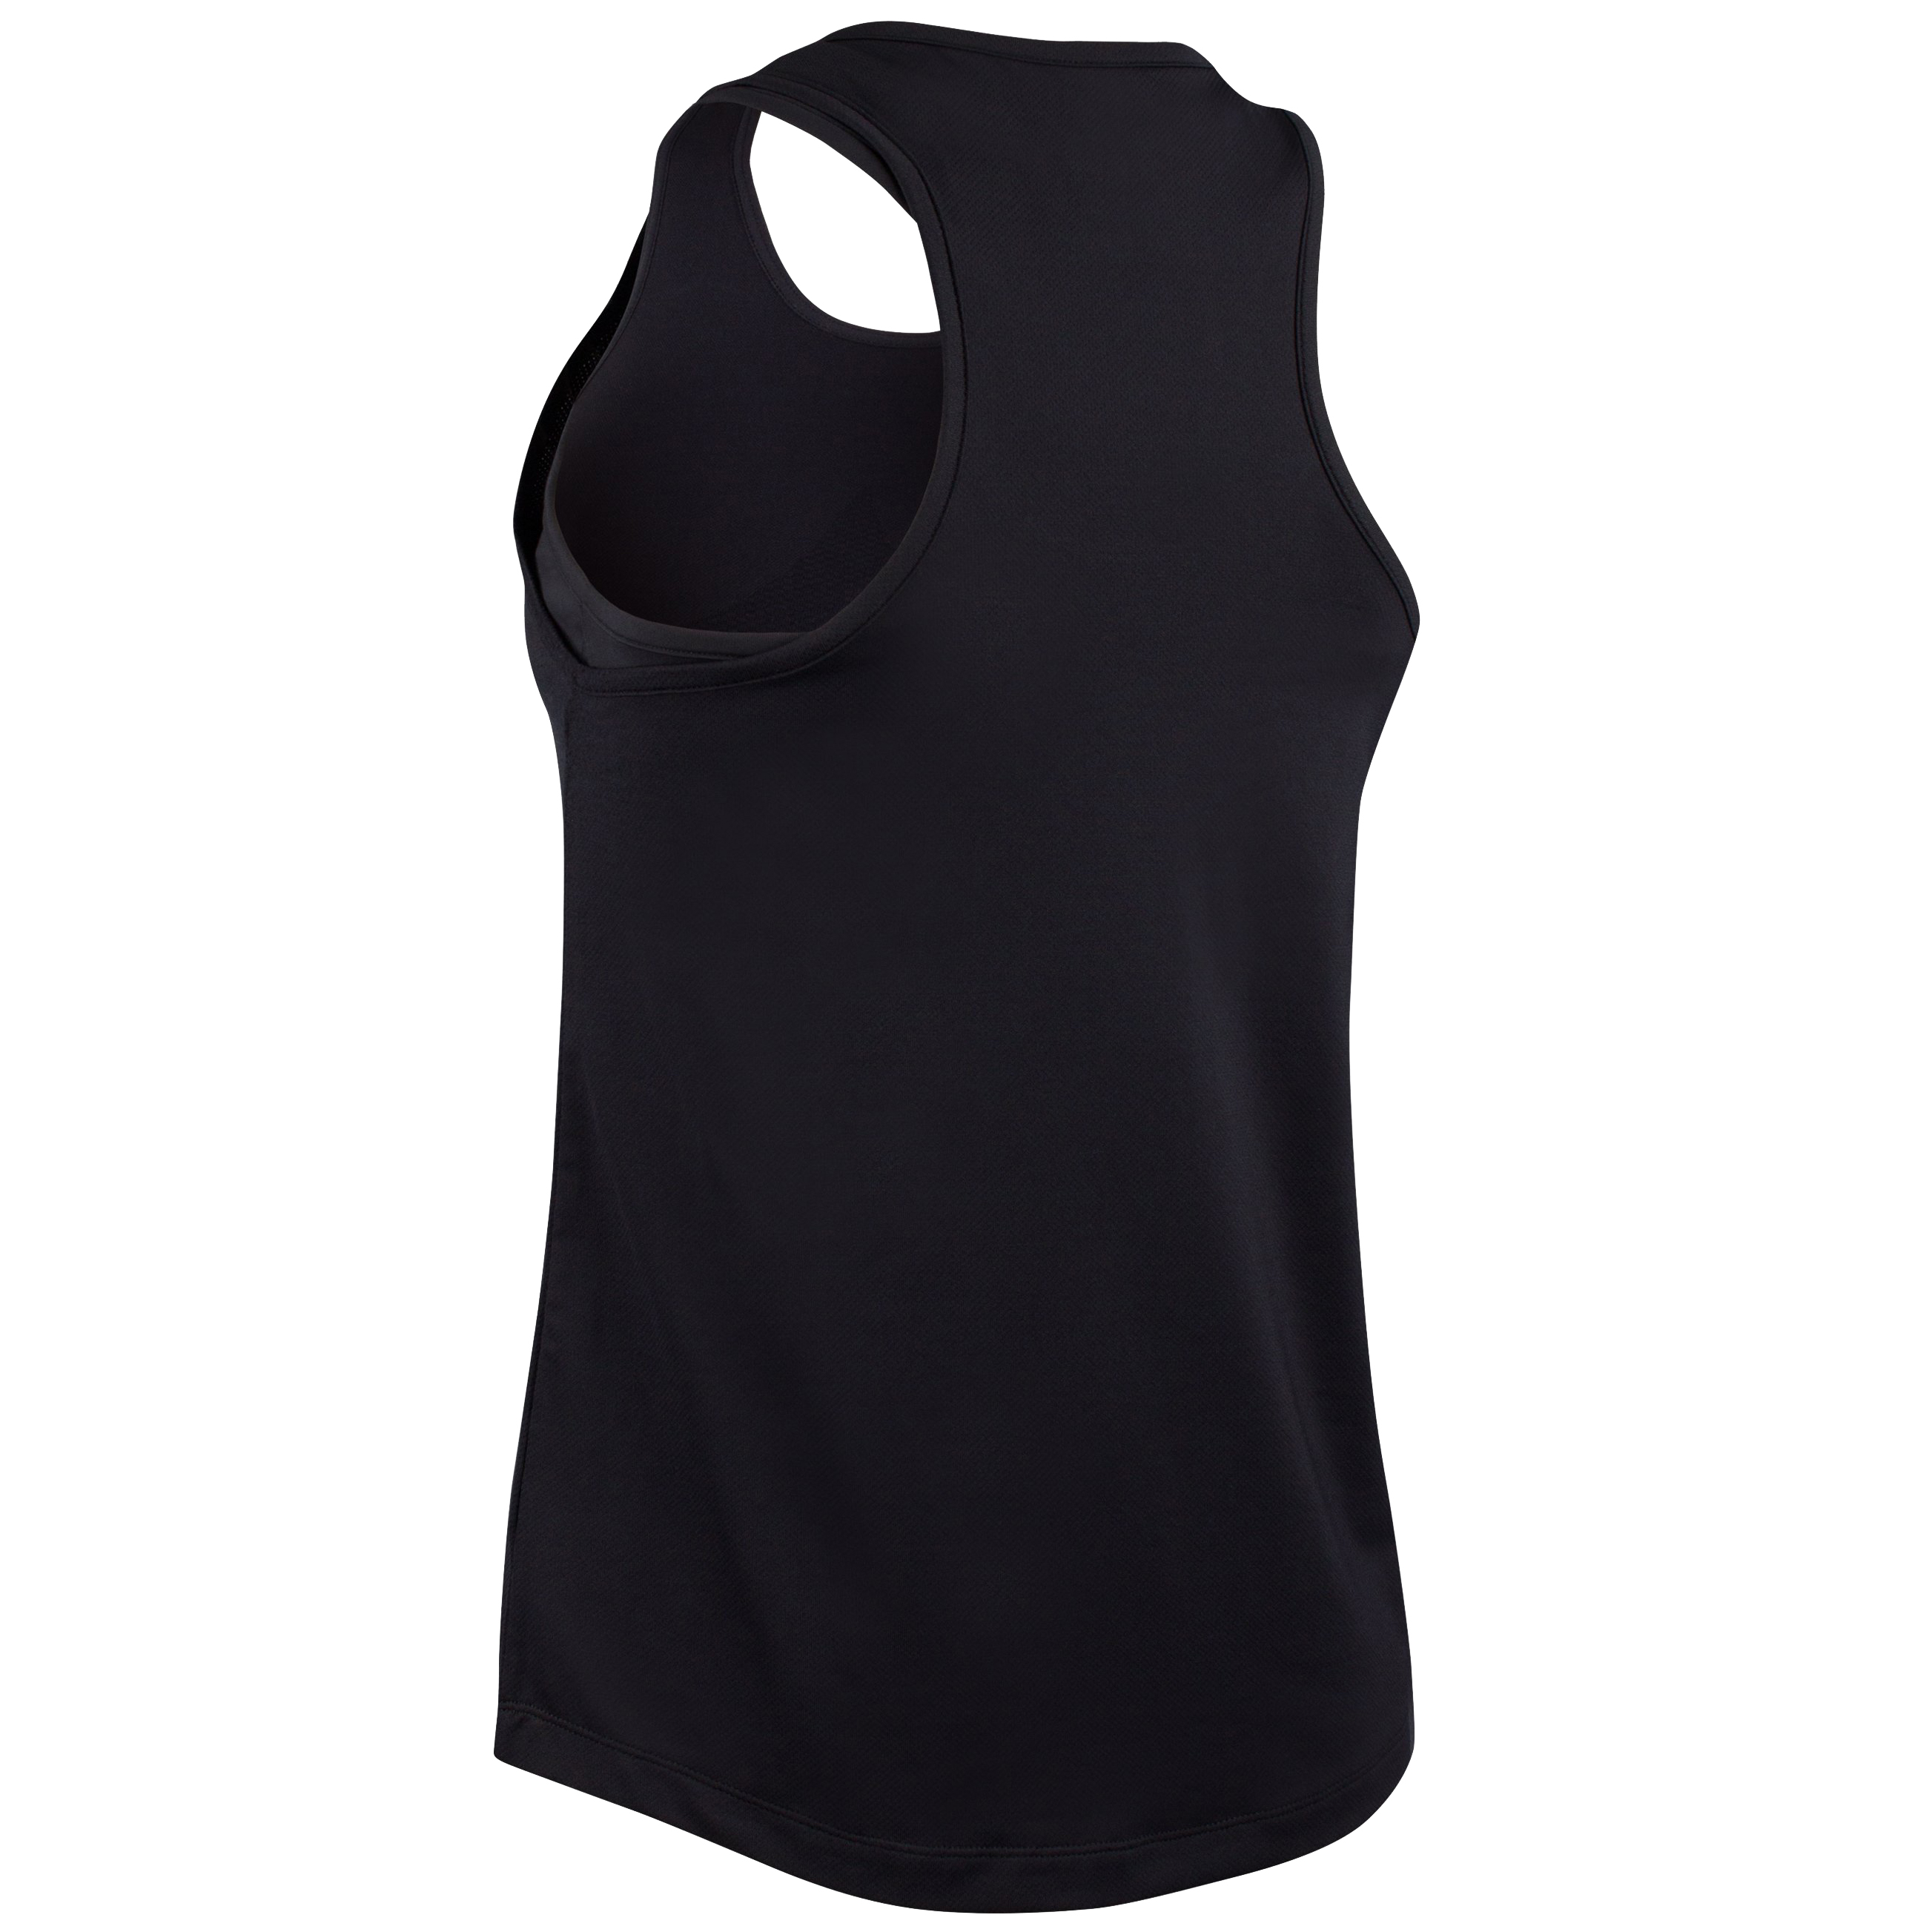 Mesh Tank 2 in 1 (Sport-BH / Tank Top), black